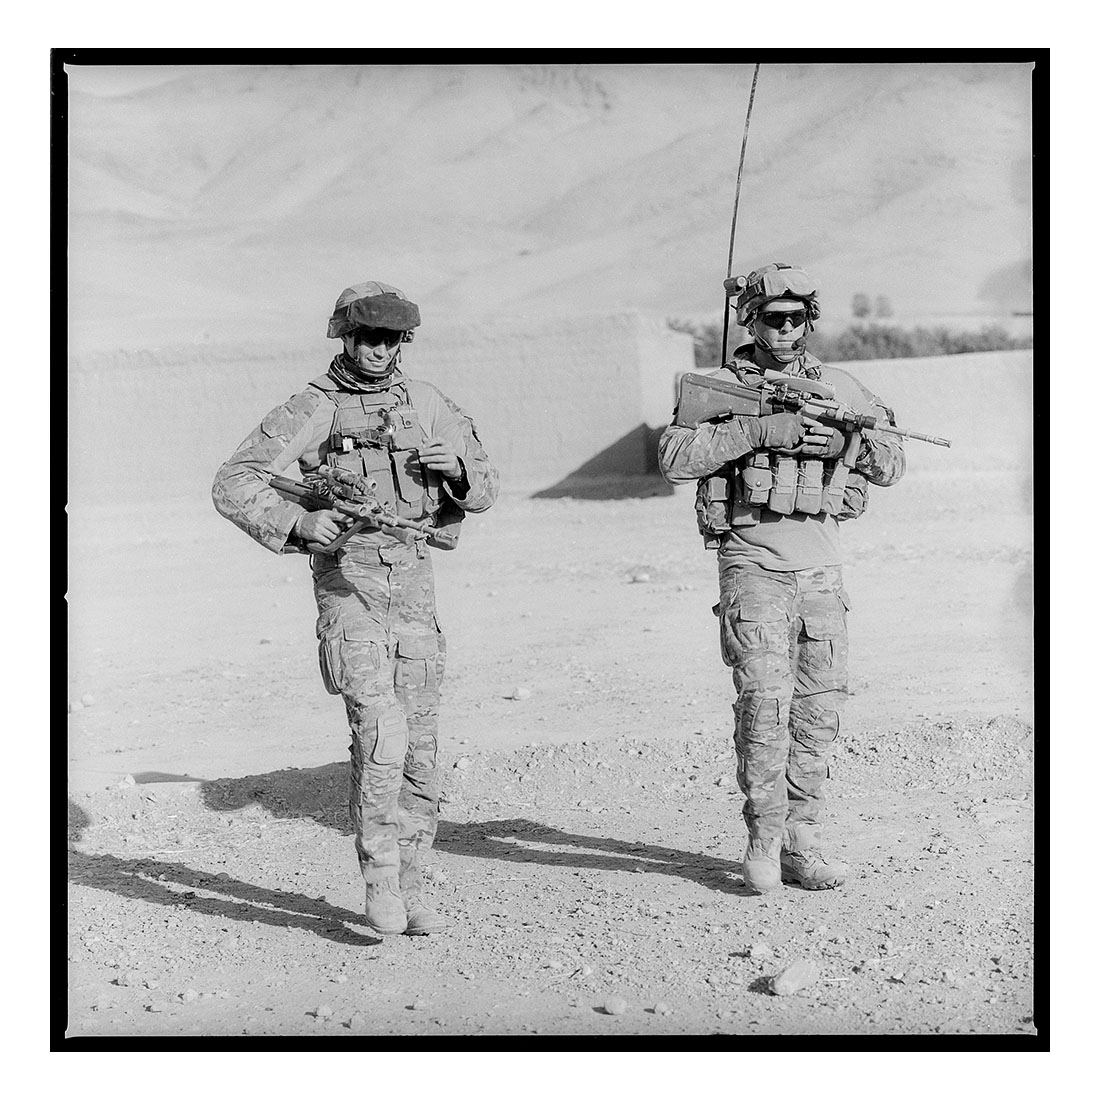 Patrol   (2011) Archival pigment prints on Ilford paper 40cm x 40cm | Edition of 25 + 3 Artist Proofs 100cm x 100cm | Edition of 10 + 3 Artist Proofs